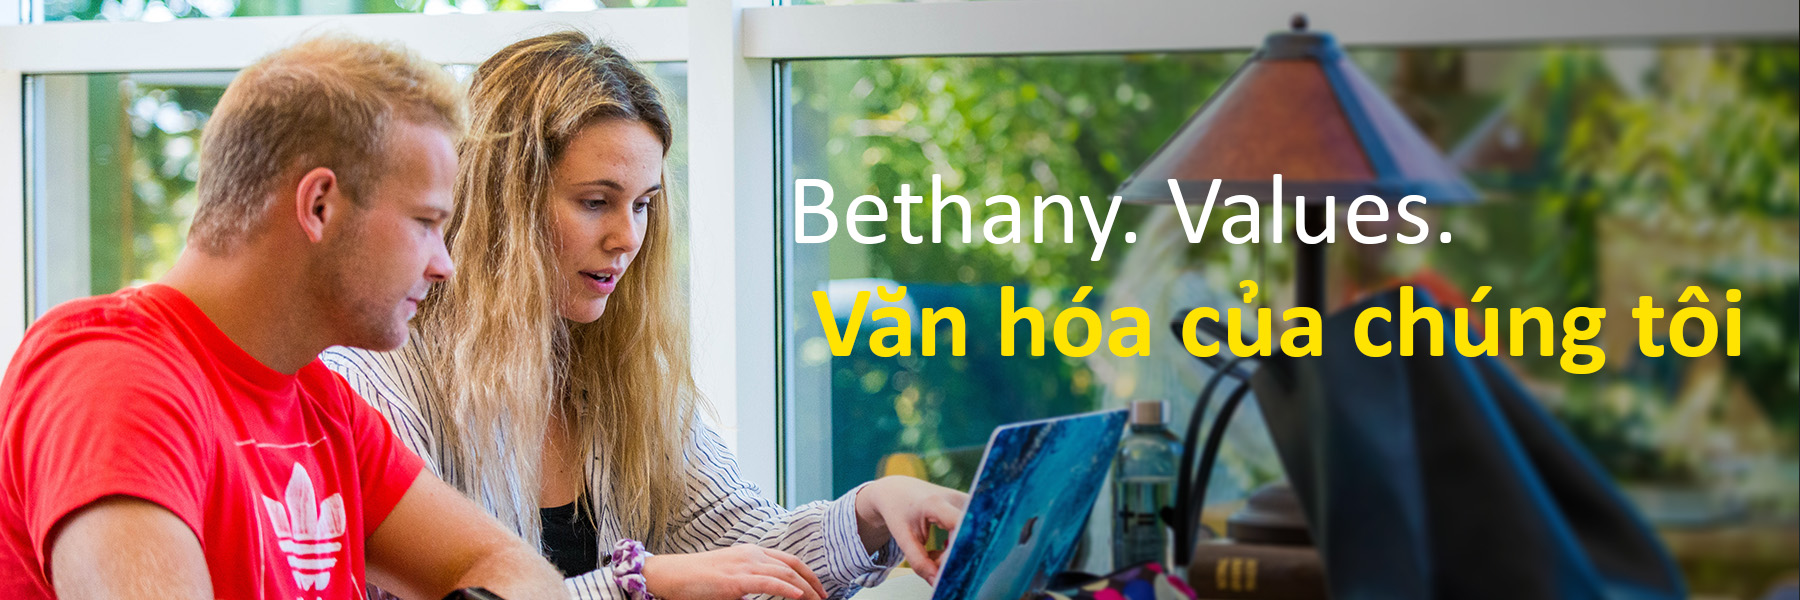 Bethany Values My Vietnamese Culture